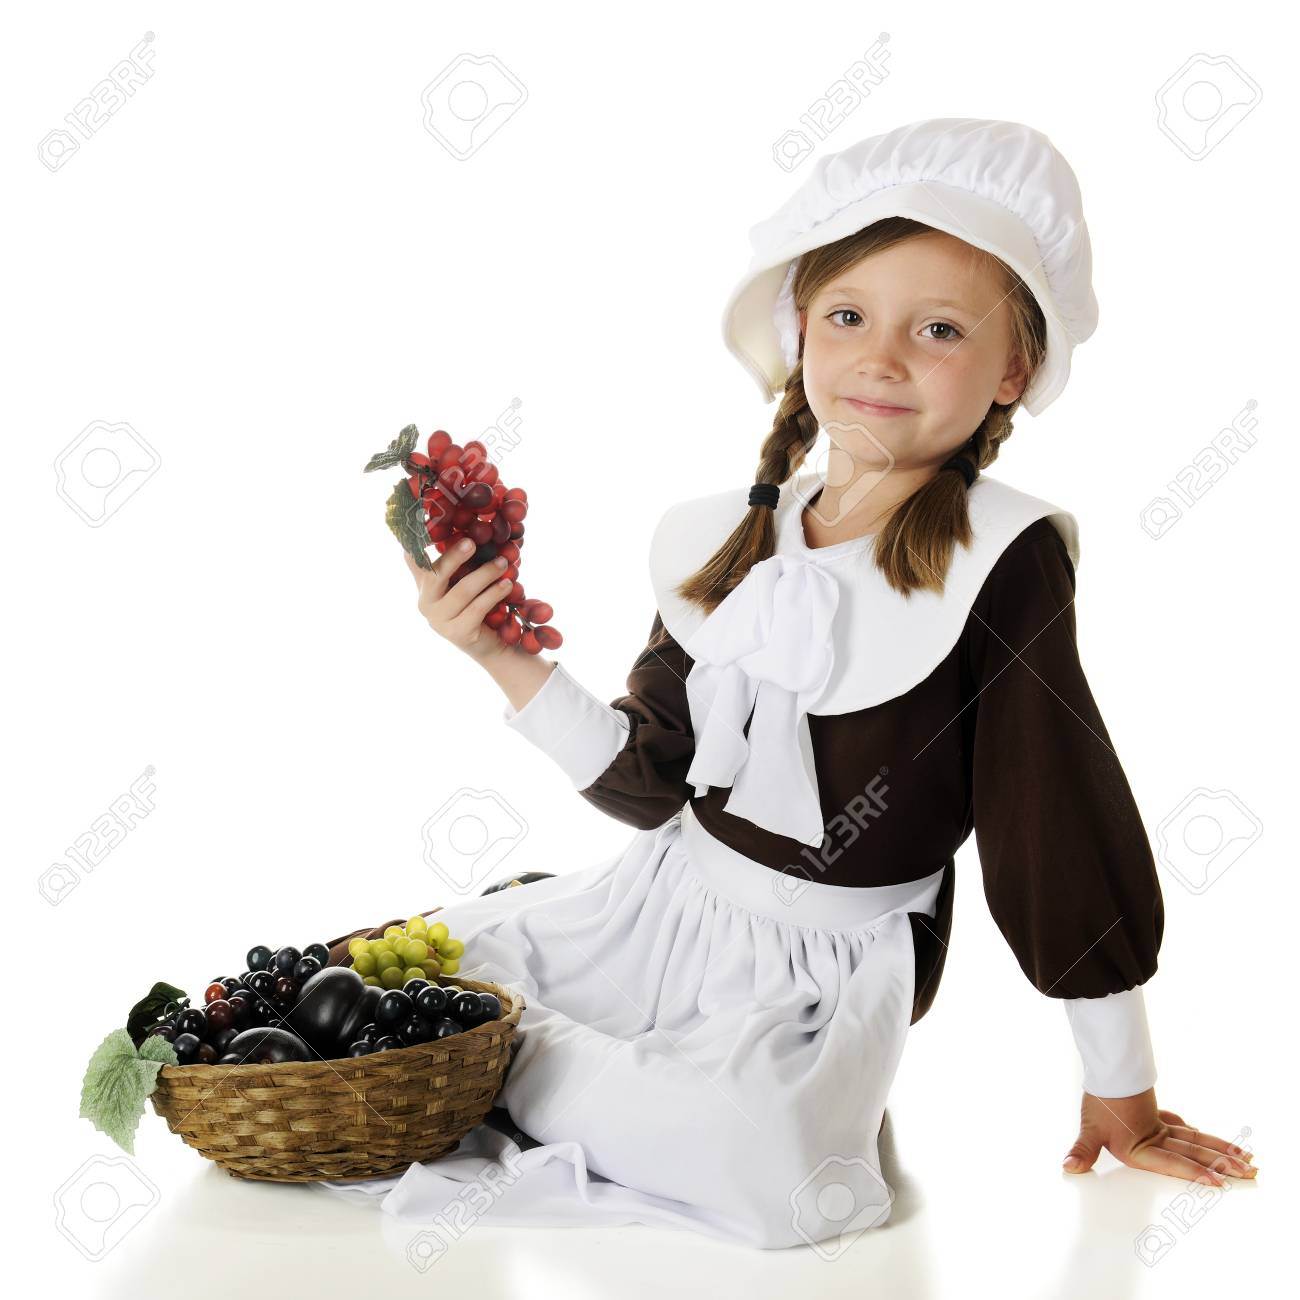 A pretty elementary Pilgrim girl happily sitting with a basket of fruit   On a white background Stock Photo - 15041411